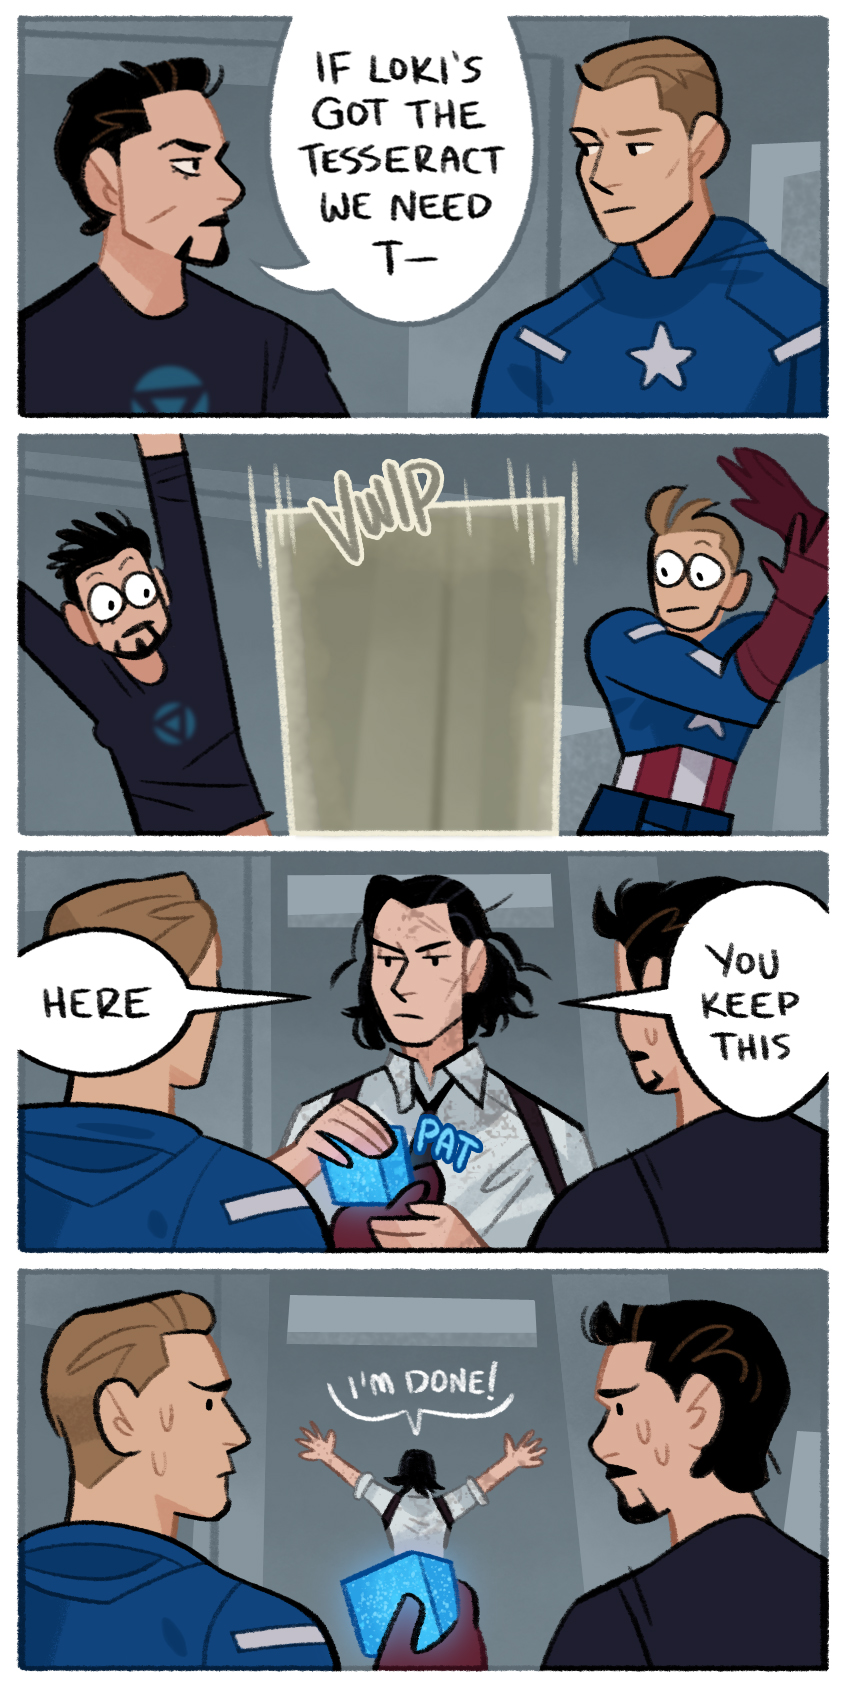 """A four panel comic. Tony Stark is talking to Steve Roges, and he says, """"If Loki's got the Tesseract we need to-."""" He's cut off by a Tempad portal appearing. Loki steps out and puts the Tesseract in Steve's hand, saying, """"Here, you keep this."""" Steve and Tony share a nervous look, while Loki walks away saying, """"I'm done!"""""""